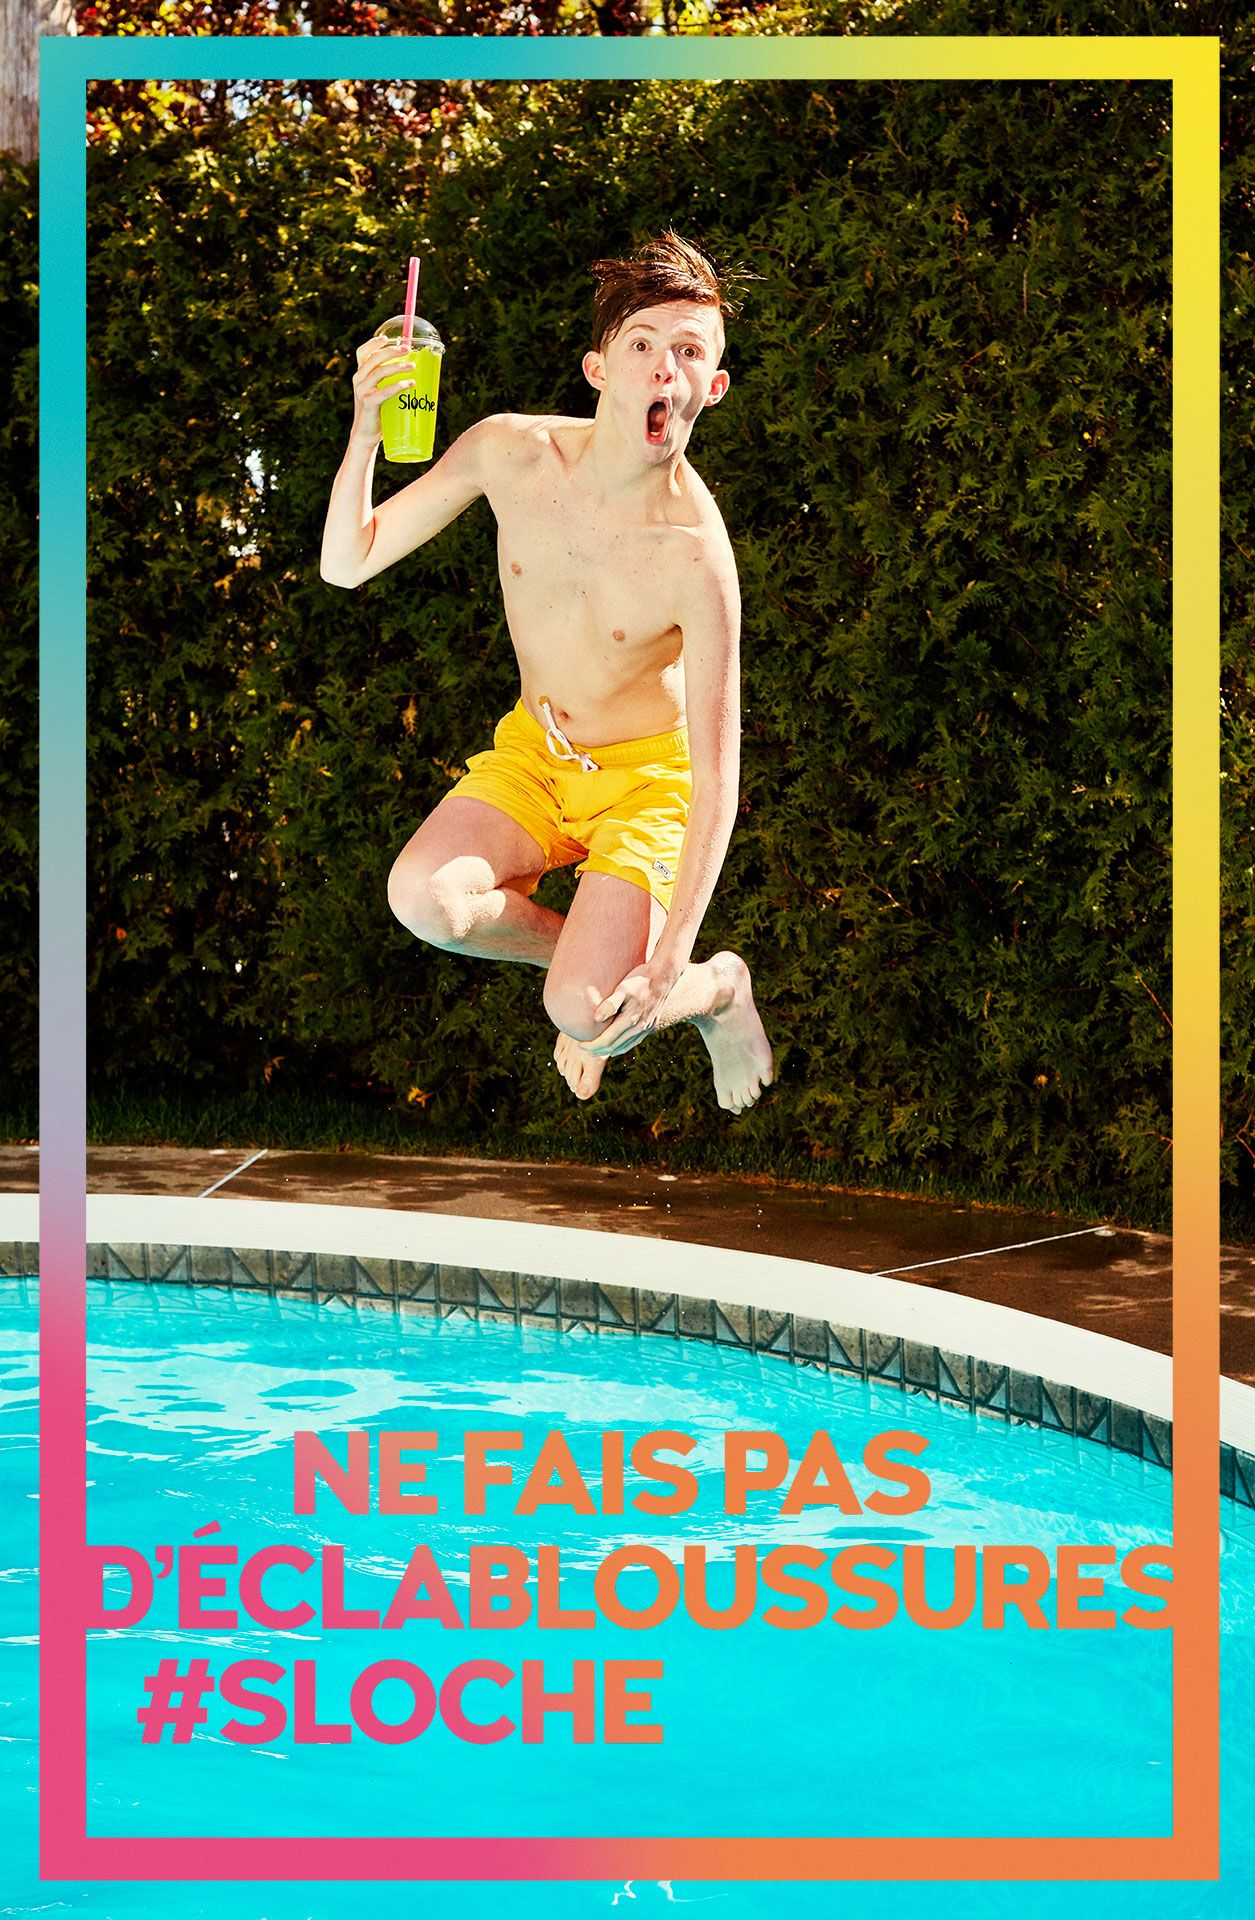 teenage boy in the air jumping in a pool looking at camera holding yellow slurpee by Jocelyn Michel for Sloche Couche Tard with Havas